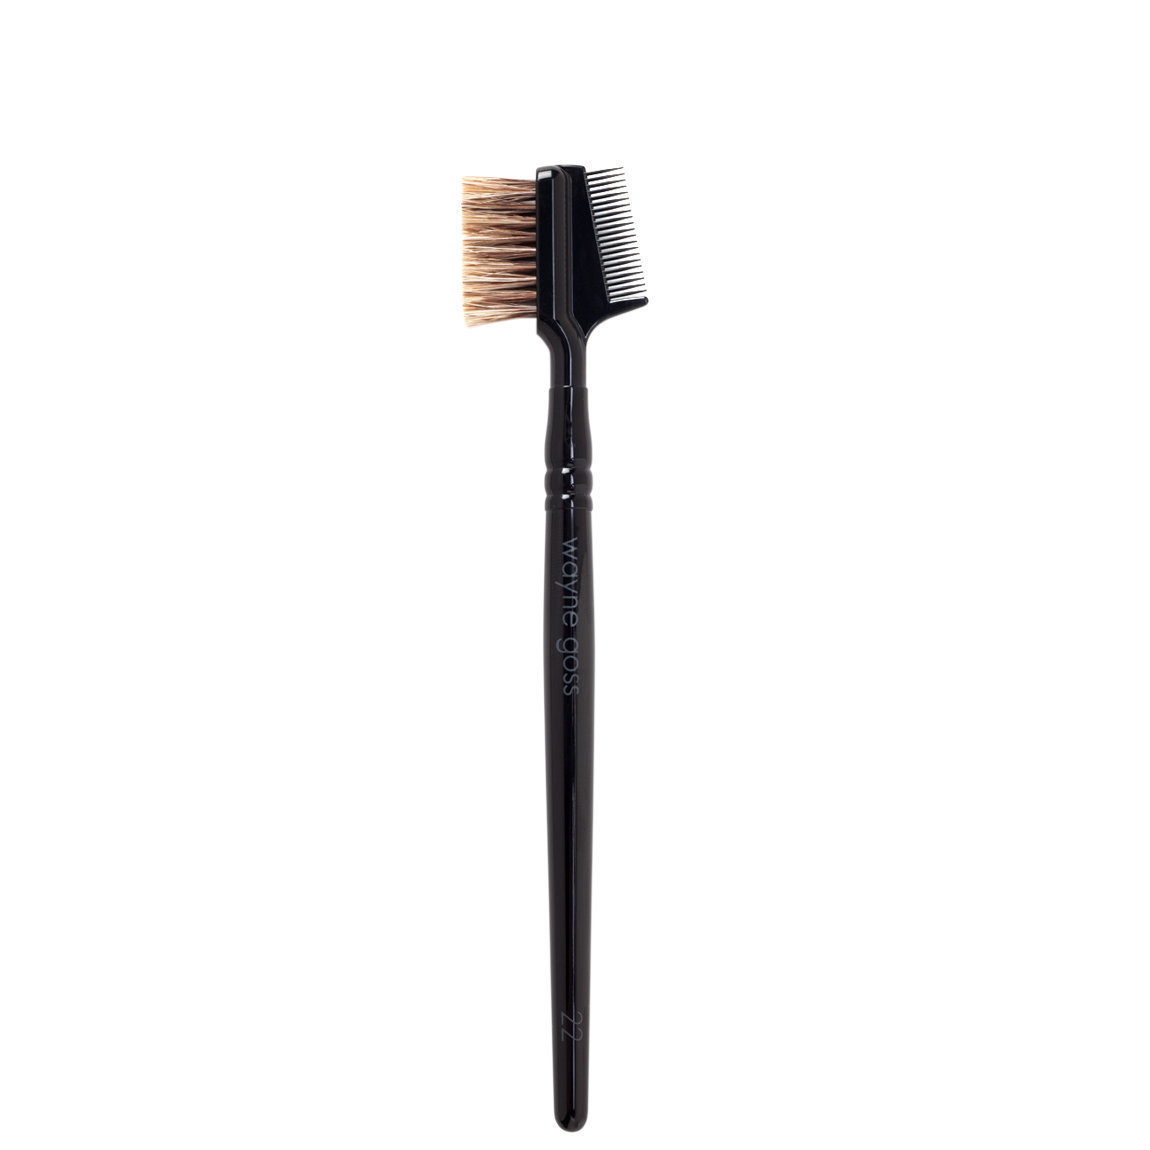 Wayne Goss Brush 22 Dual Ended Brow Brush product smear.